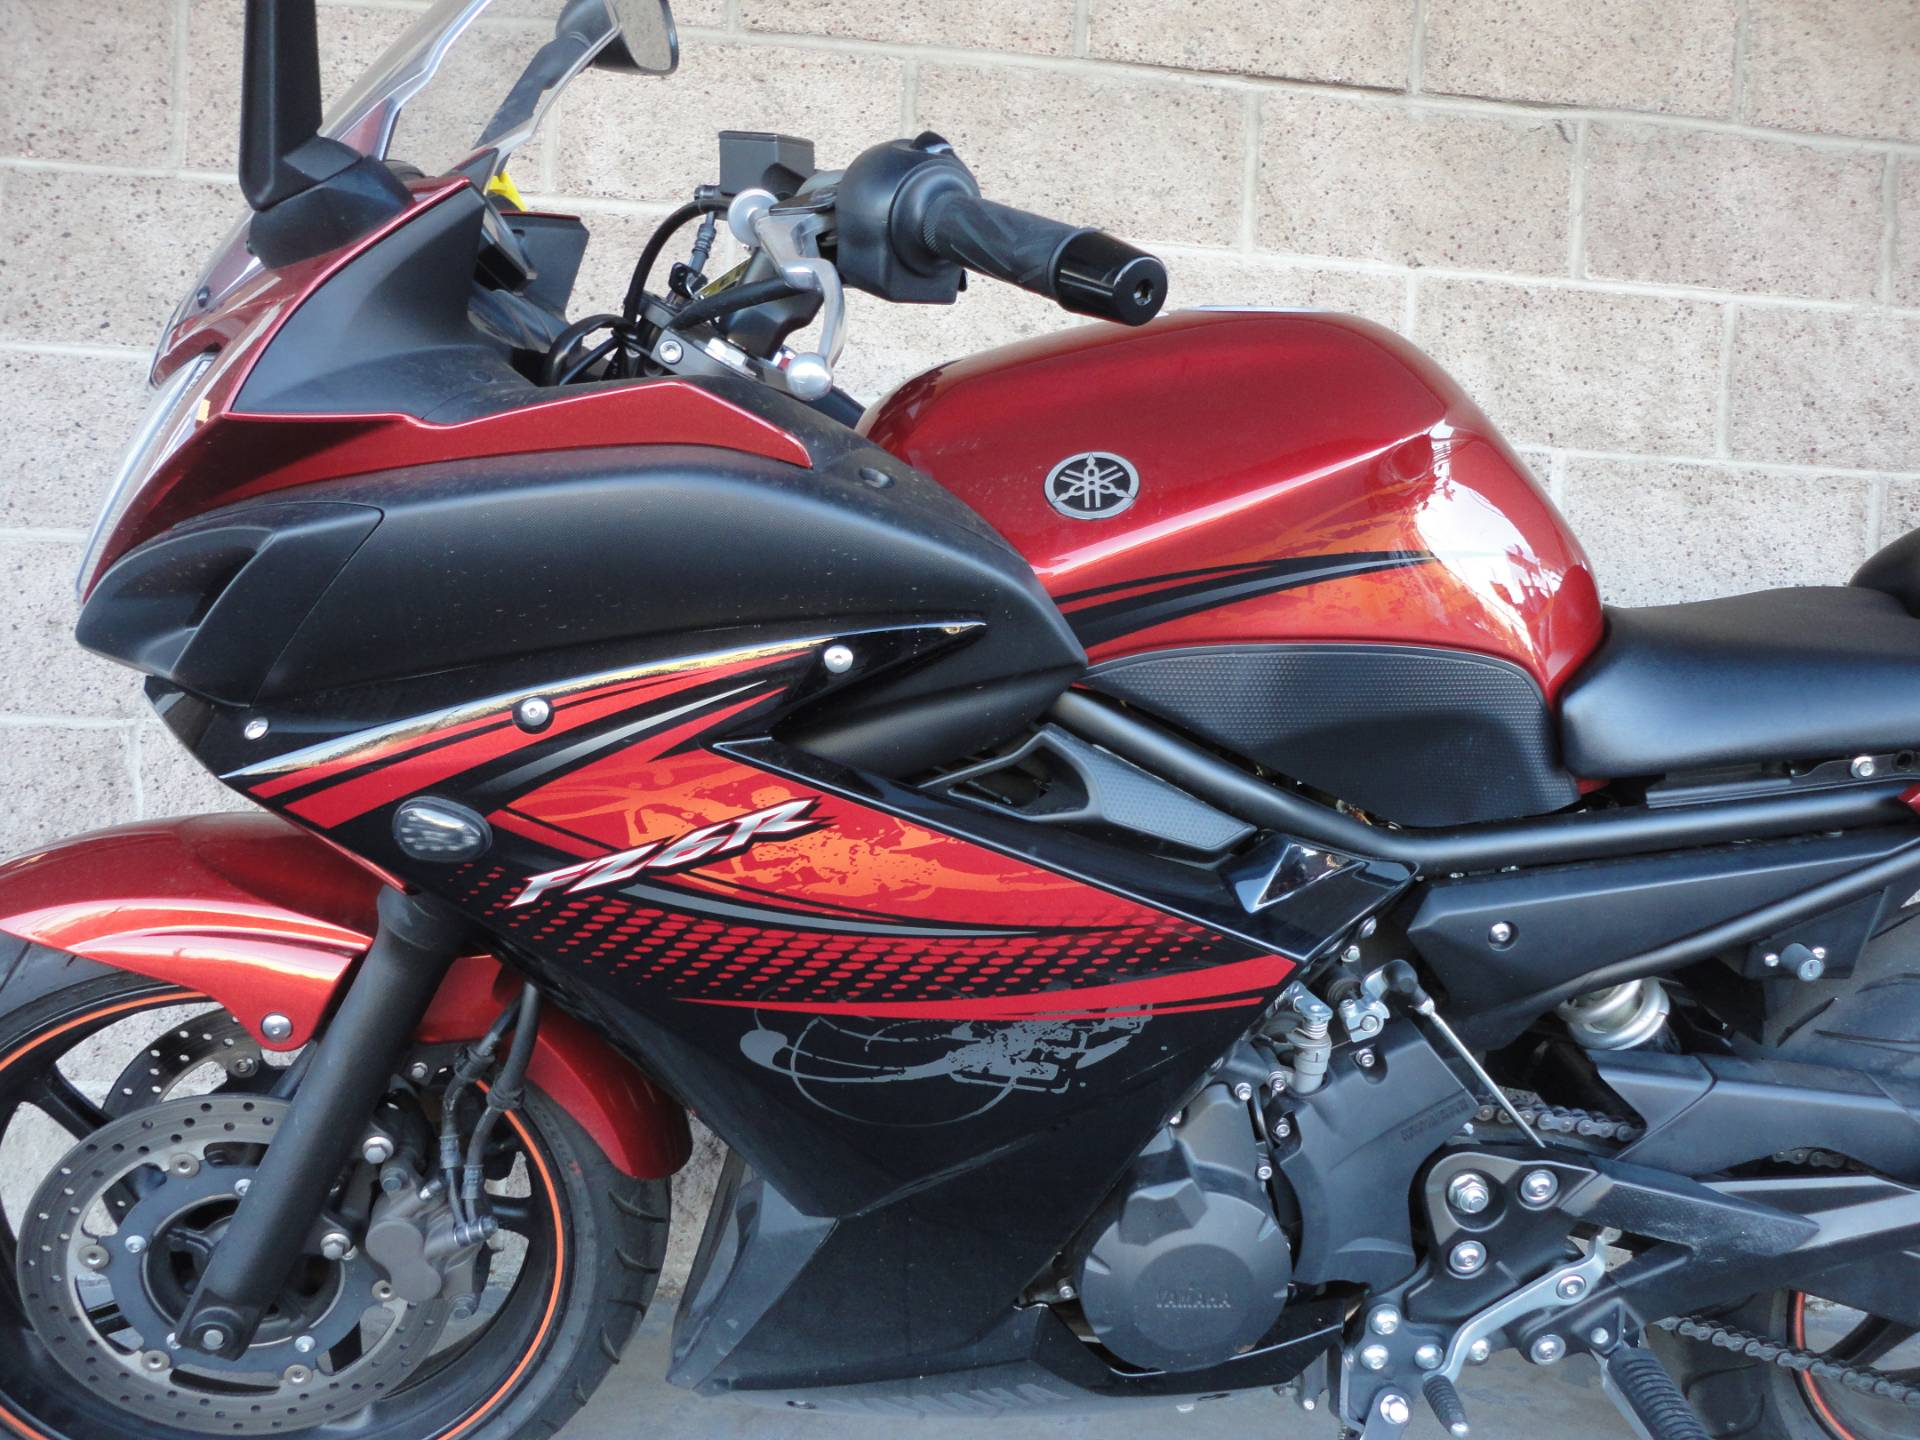 2011 Yamaha FZ6R in Denver, Colorado